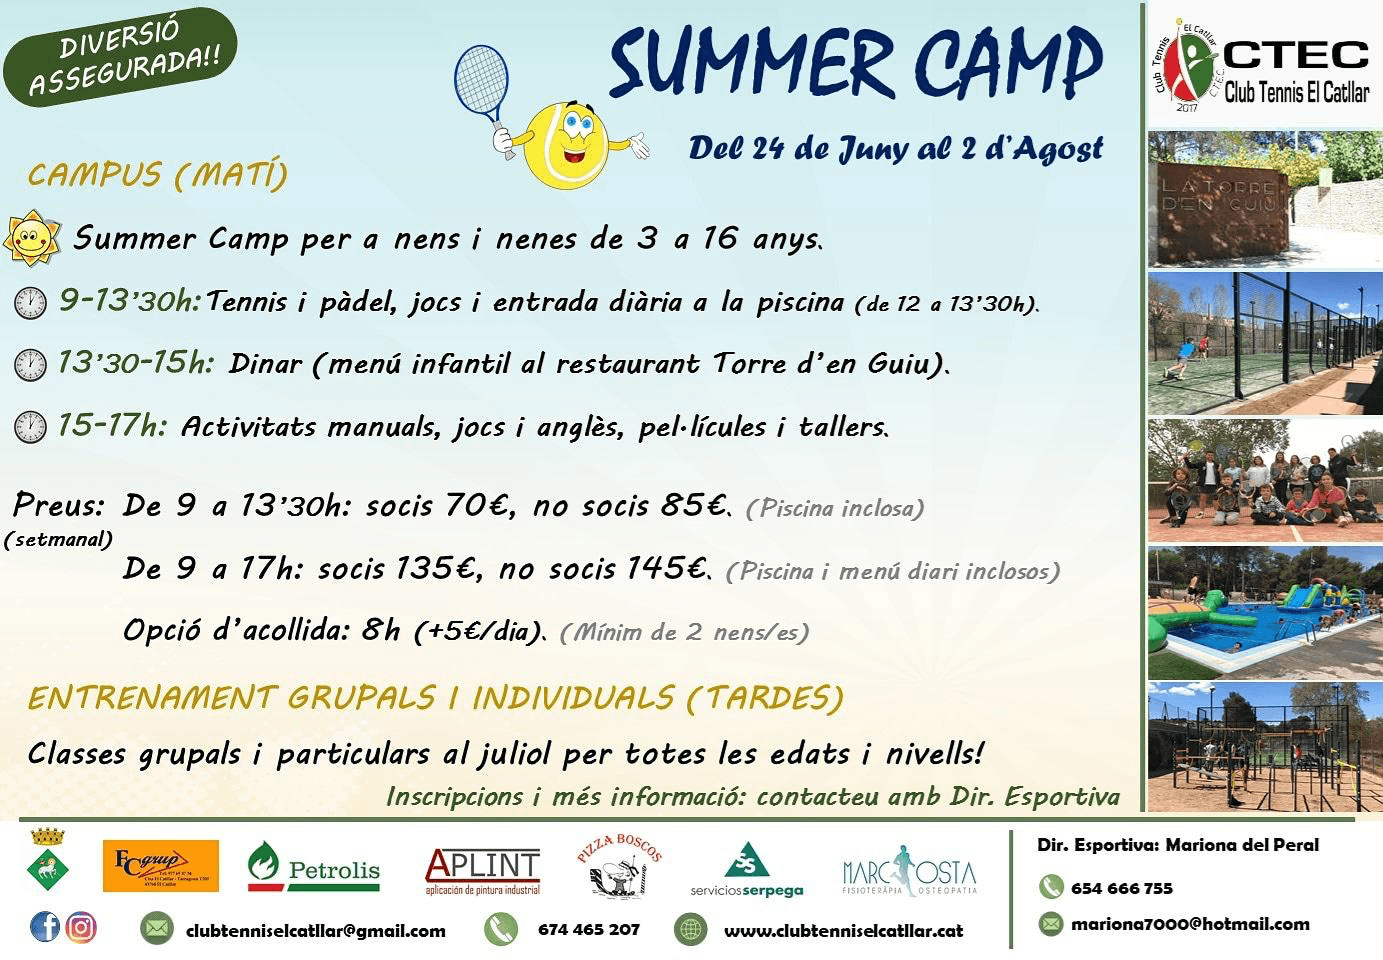 SUMMER CAMP. Club Tennis el Catllar